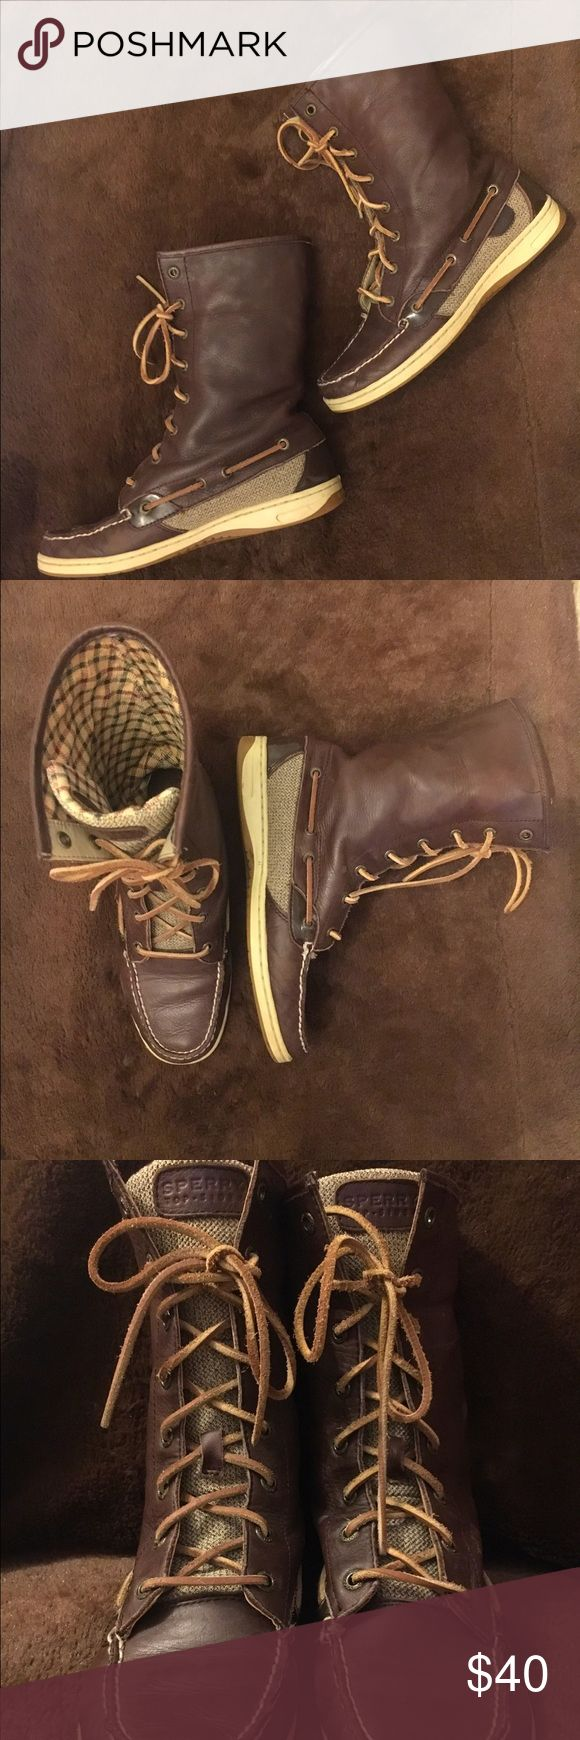 Sperry Top-sider Leather Boots